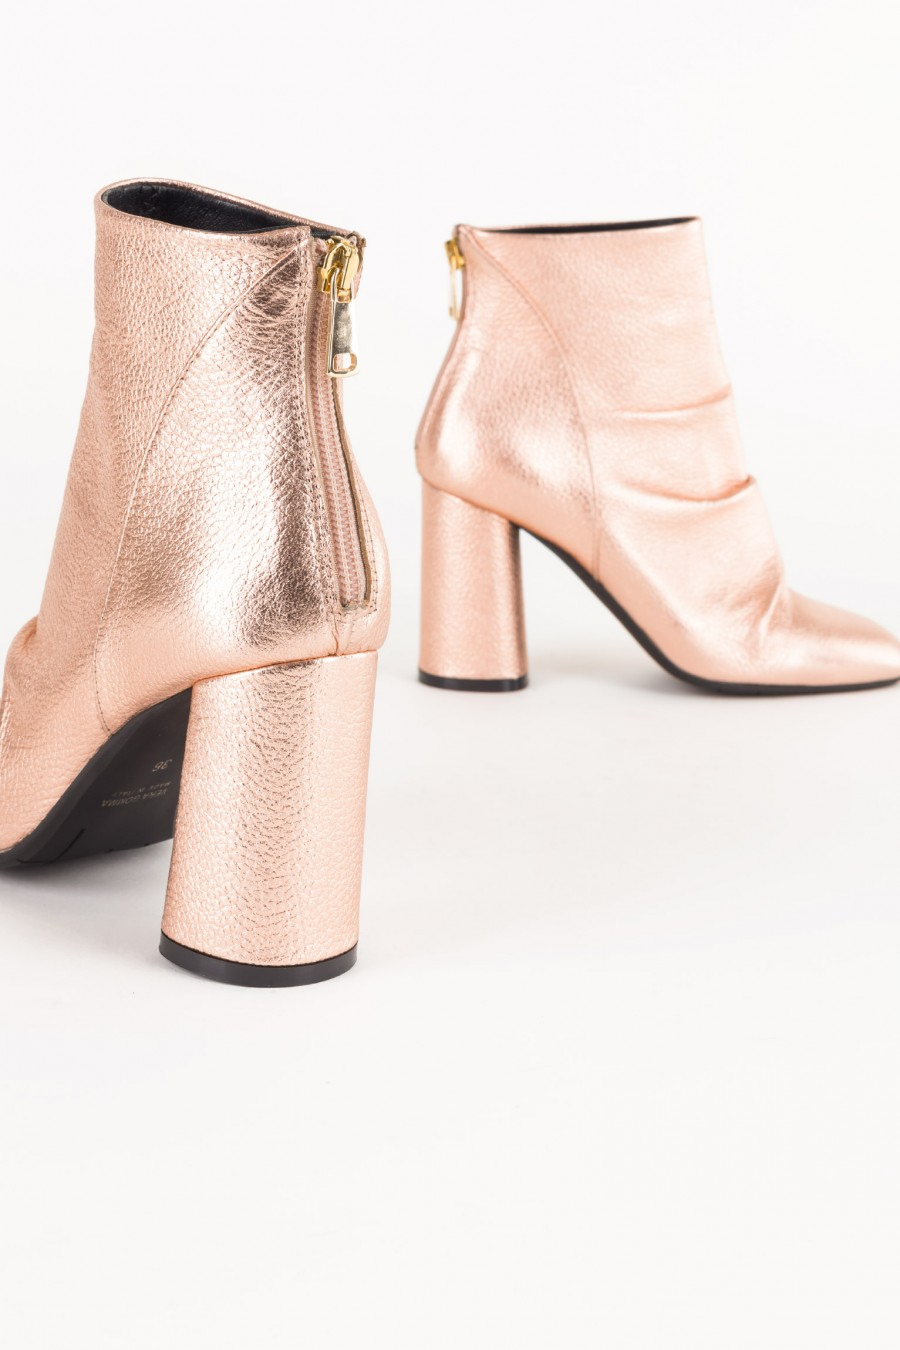 Sparkly rose boots